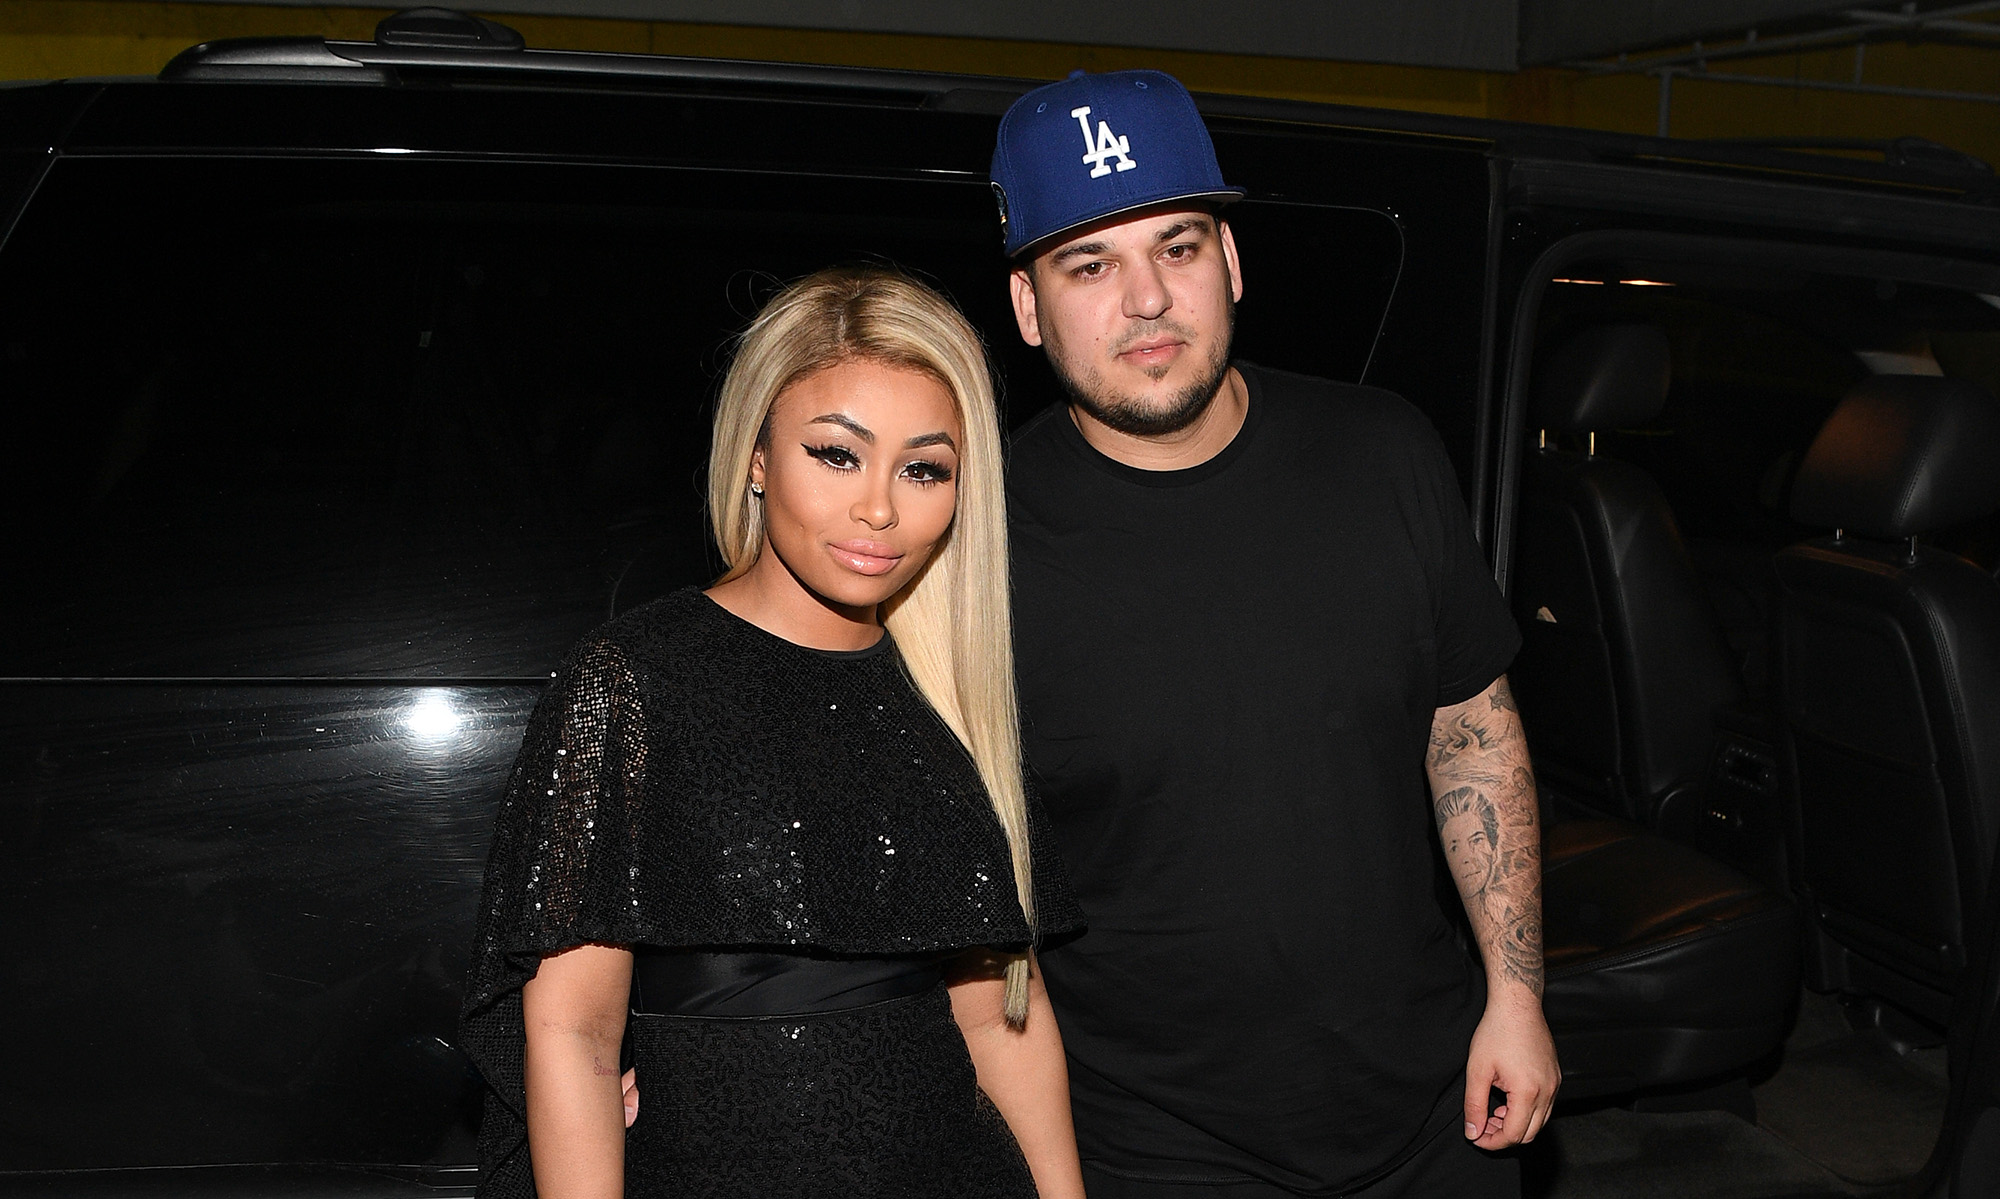 """kuwk-blac-chyna-admits-that-she-wrapped-phone-charging-cord-around-ex-rob-kardashians-neck-but-insists-she-did-not-try-to-strangle-him"""